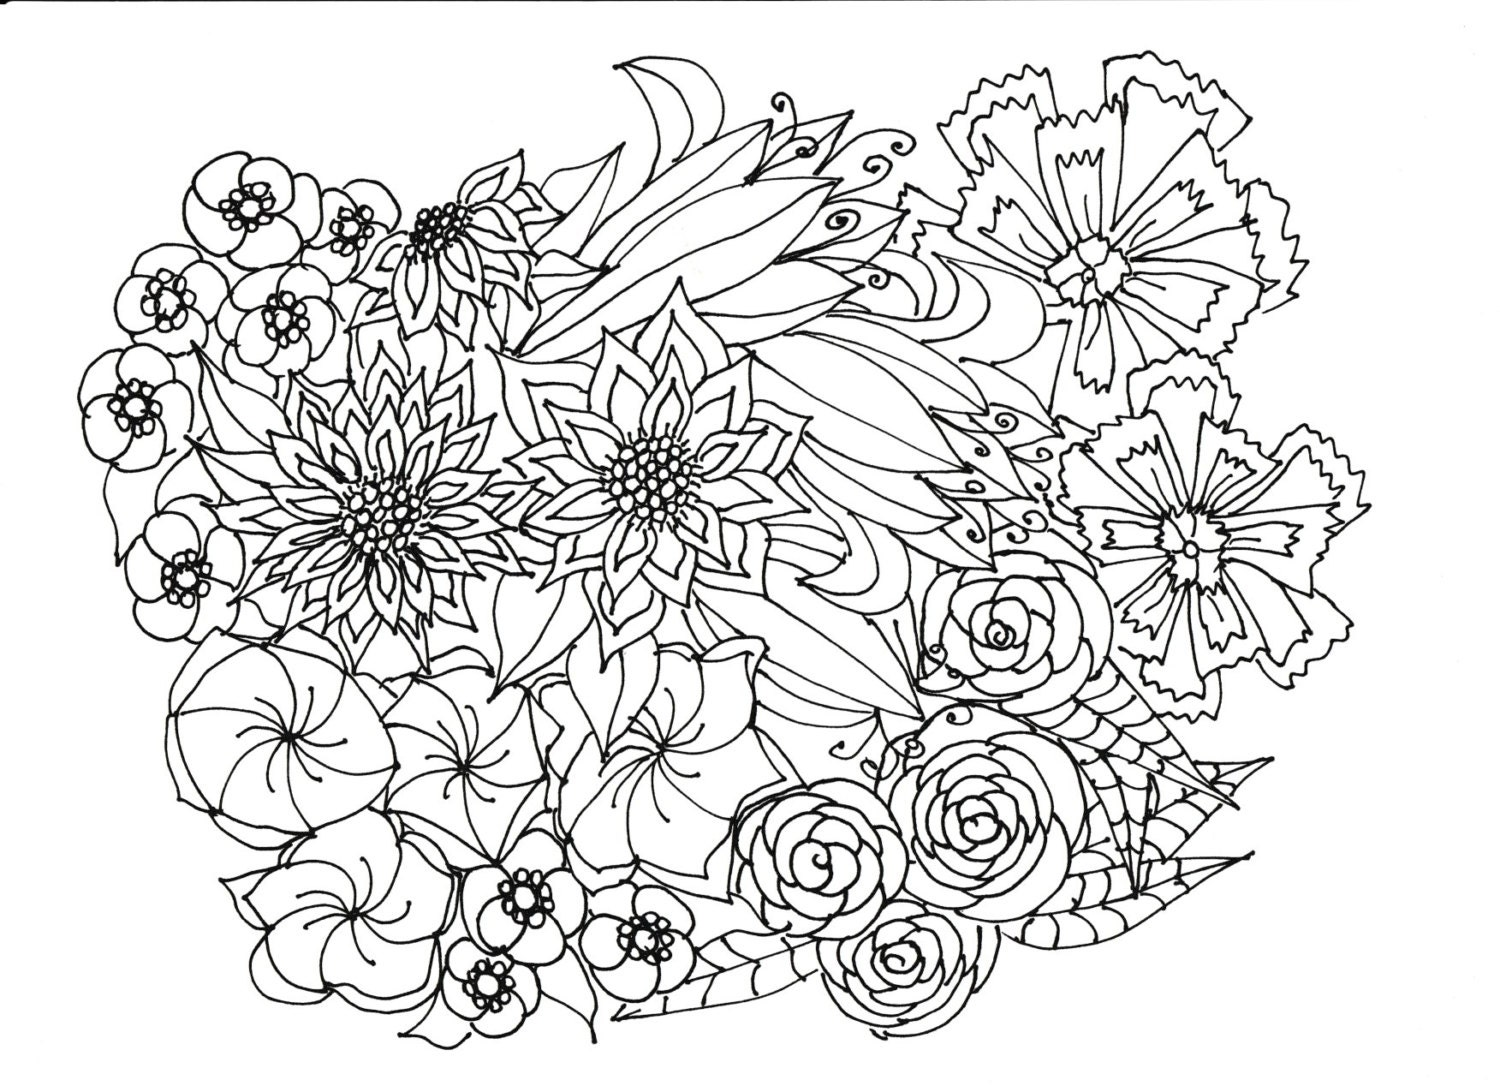 coloring pages of bladderworts plants - photo#14